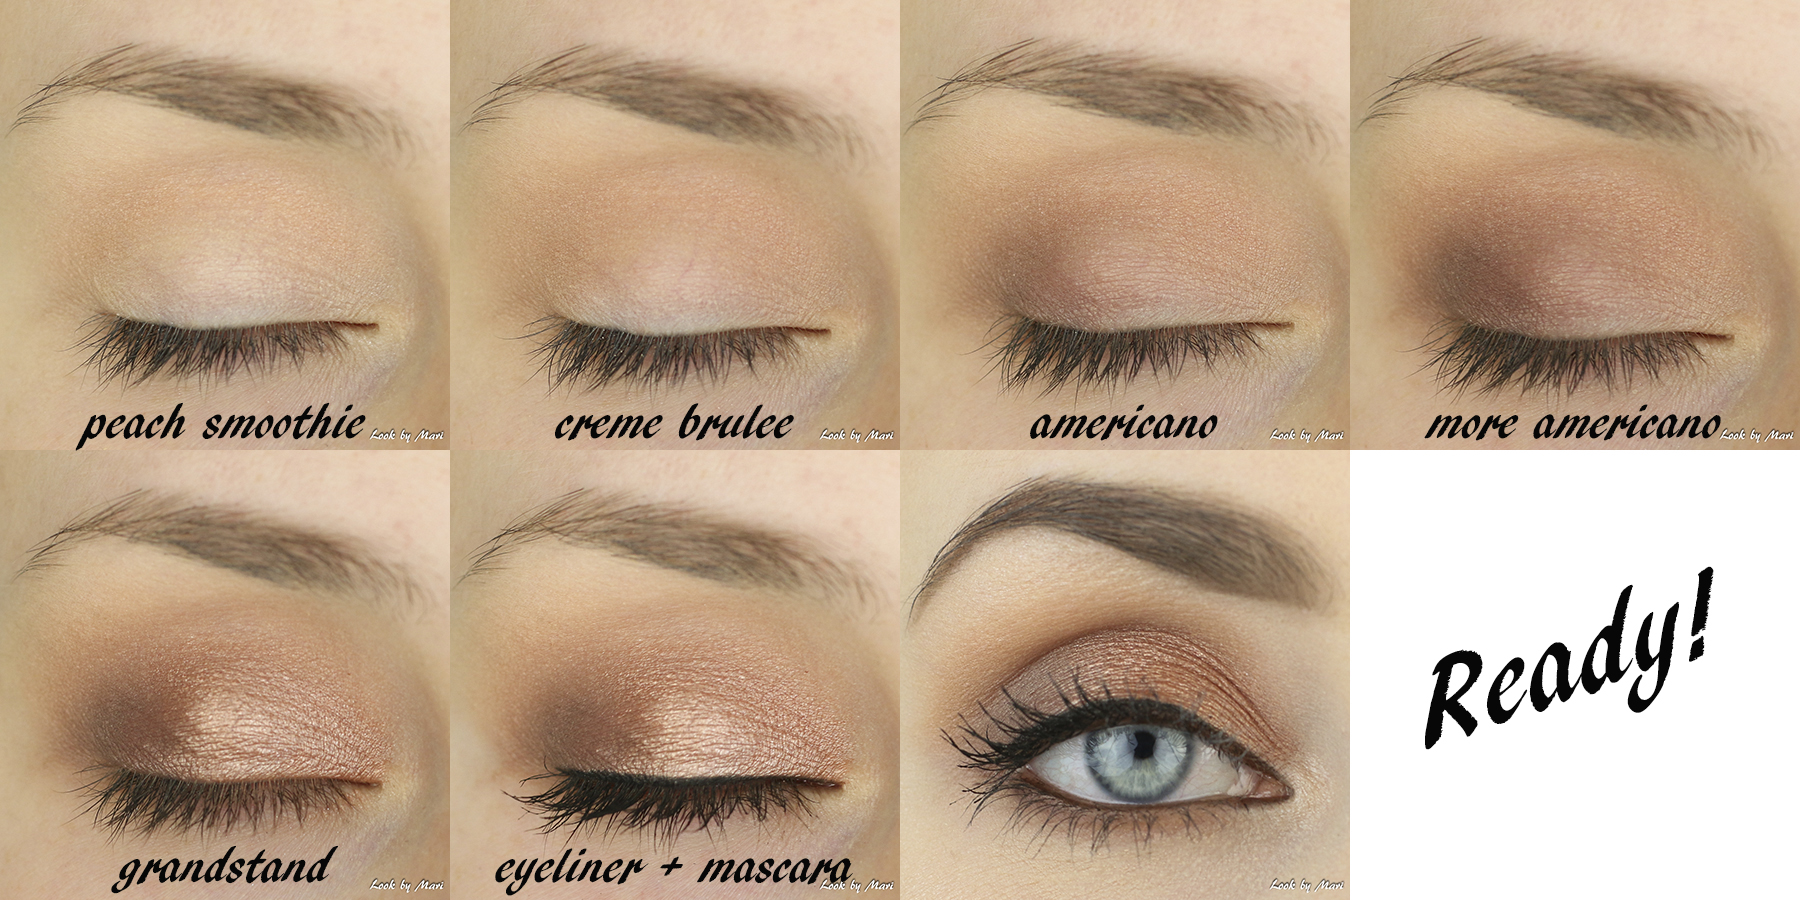 4 brown eye makeup tutorial ideas inspo easy for beginners long lasting